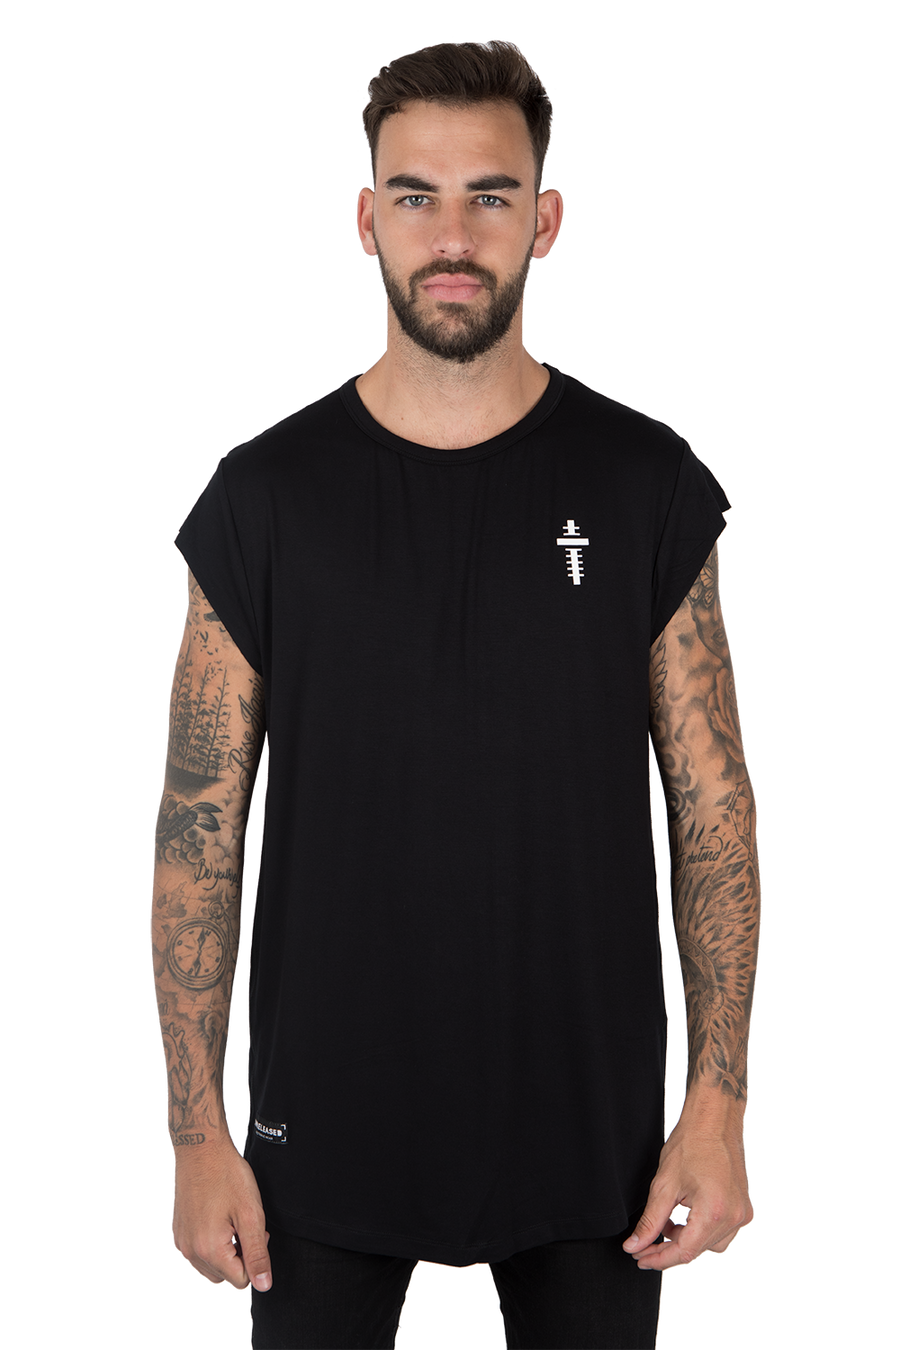 CUTTED SLEEVES T-SHIRT RAUL PACHECO EDITION - BLACK